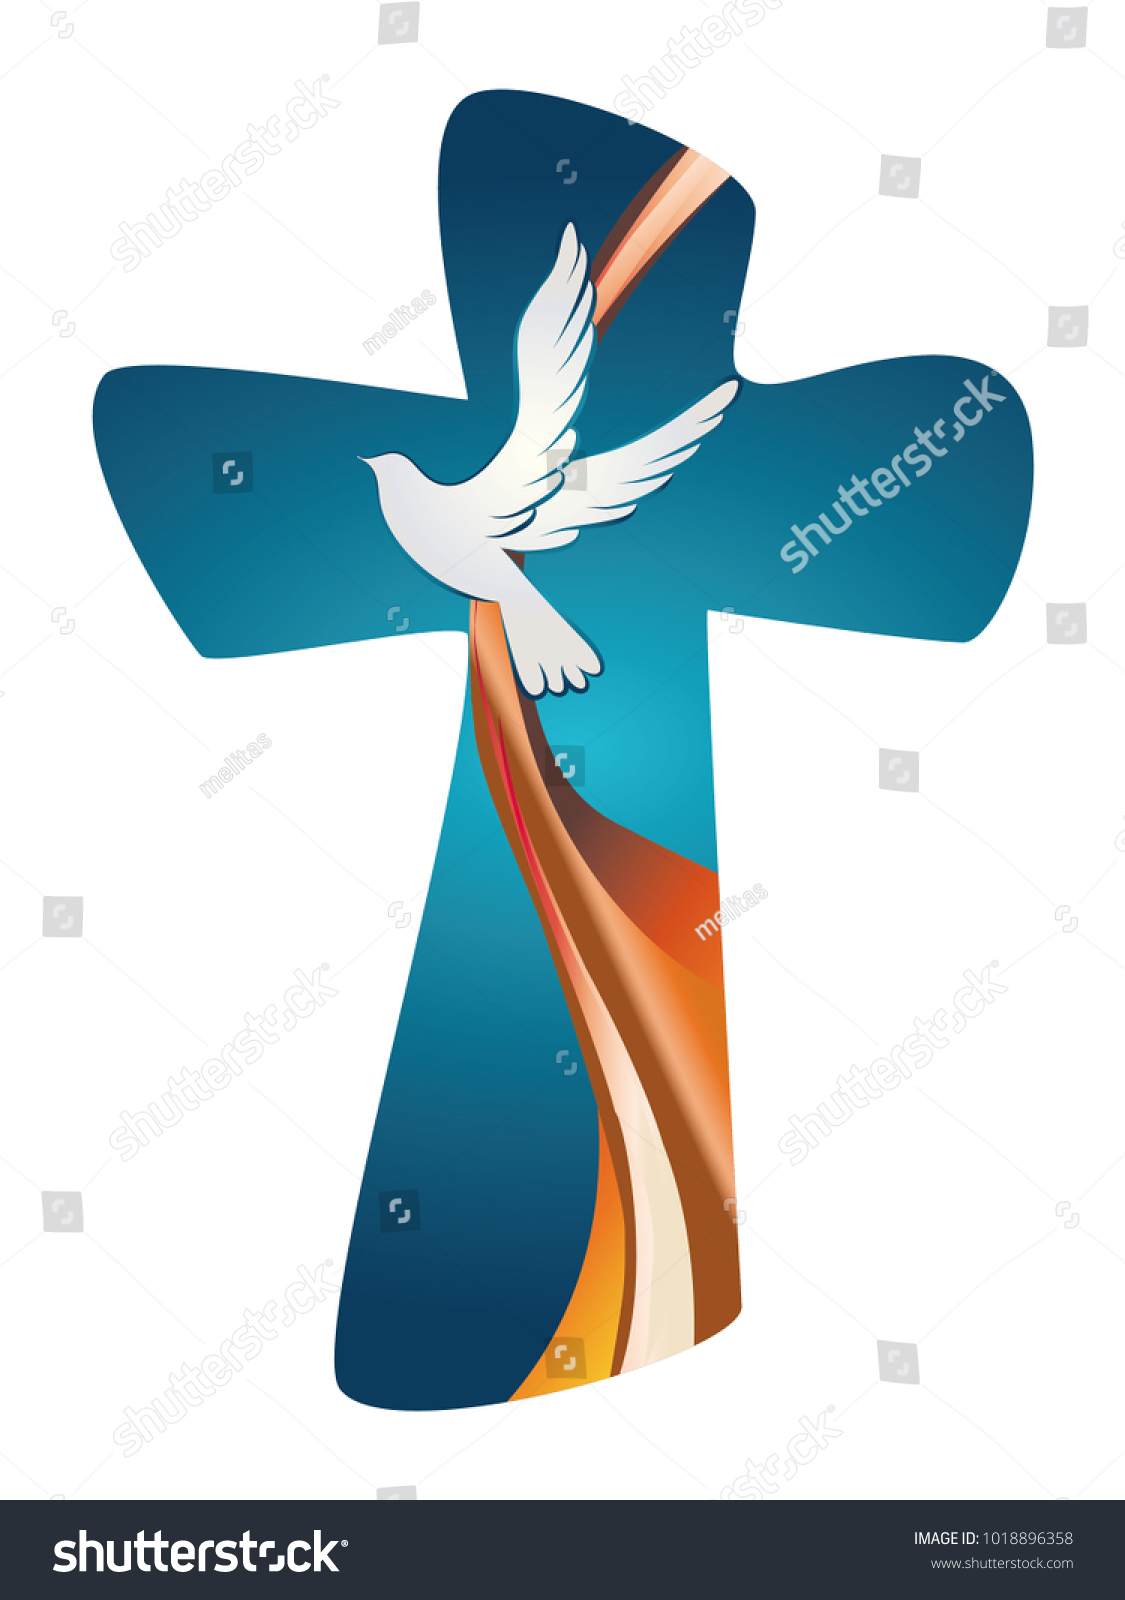 Holy spirit symbol christian cross dove stock vector 1018896358 holy spirit symbol christian cross with dove on blue background biocorpaavc